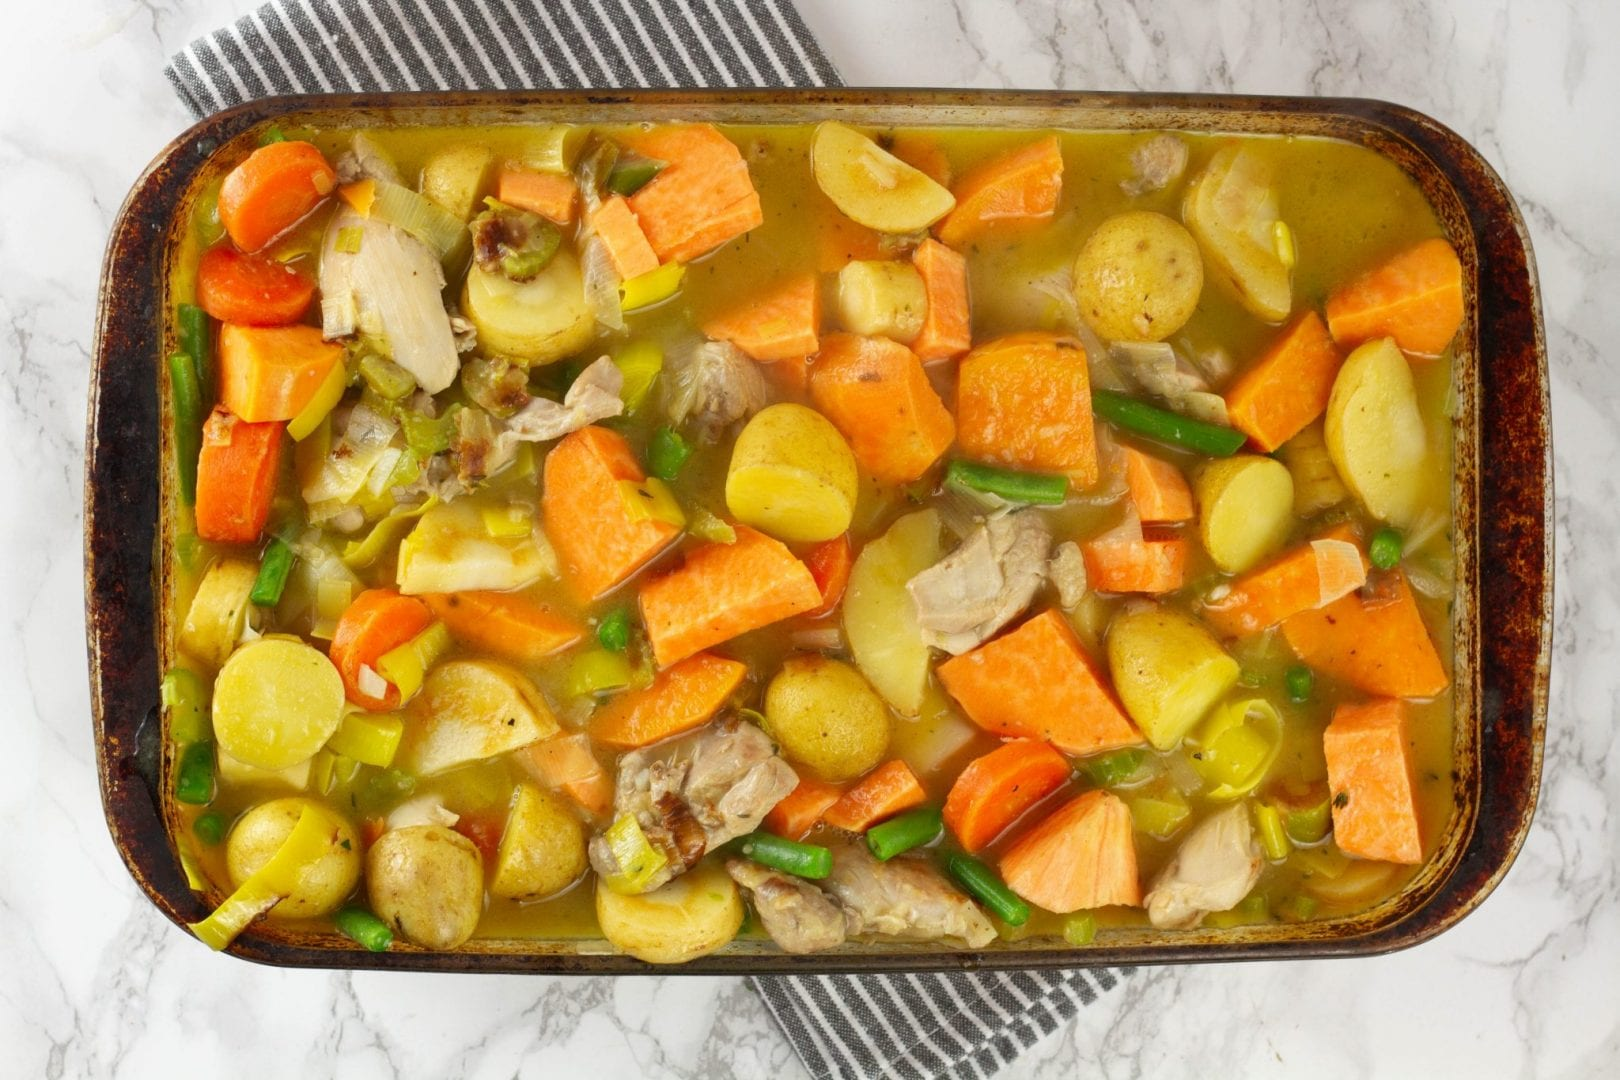 Slow cooker chicken stew - try this delicious recipe for family dinners